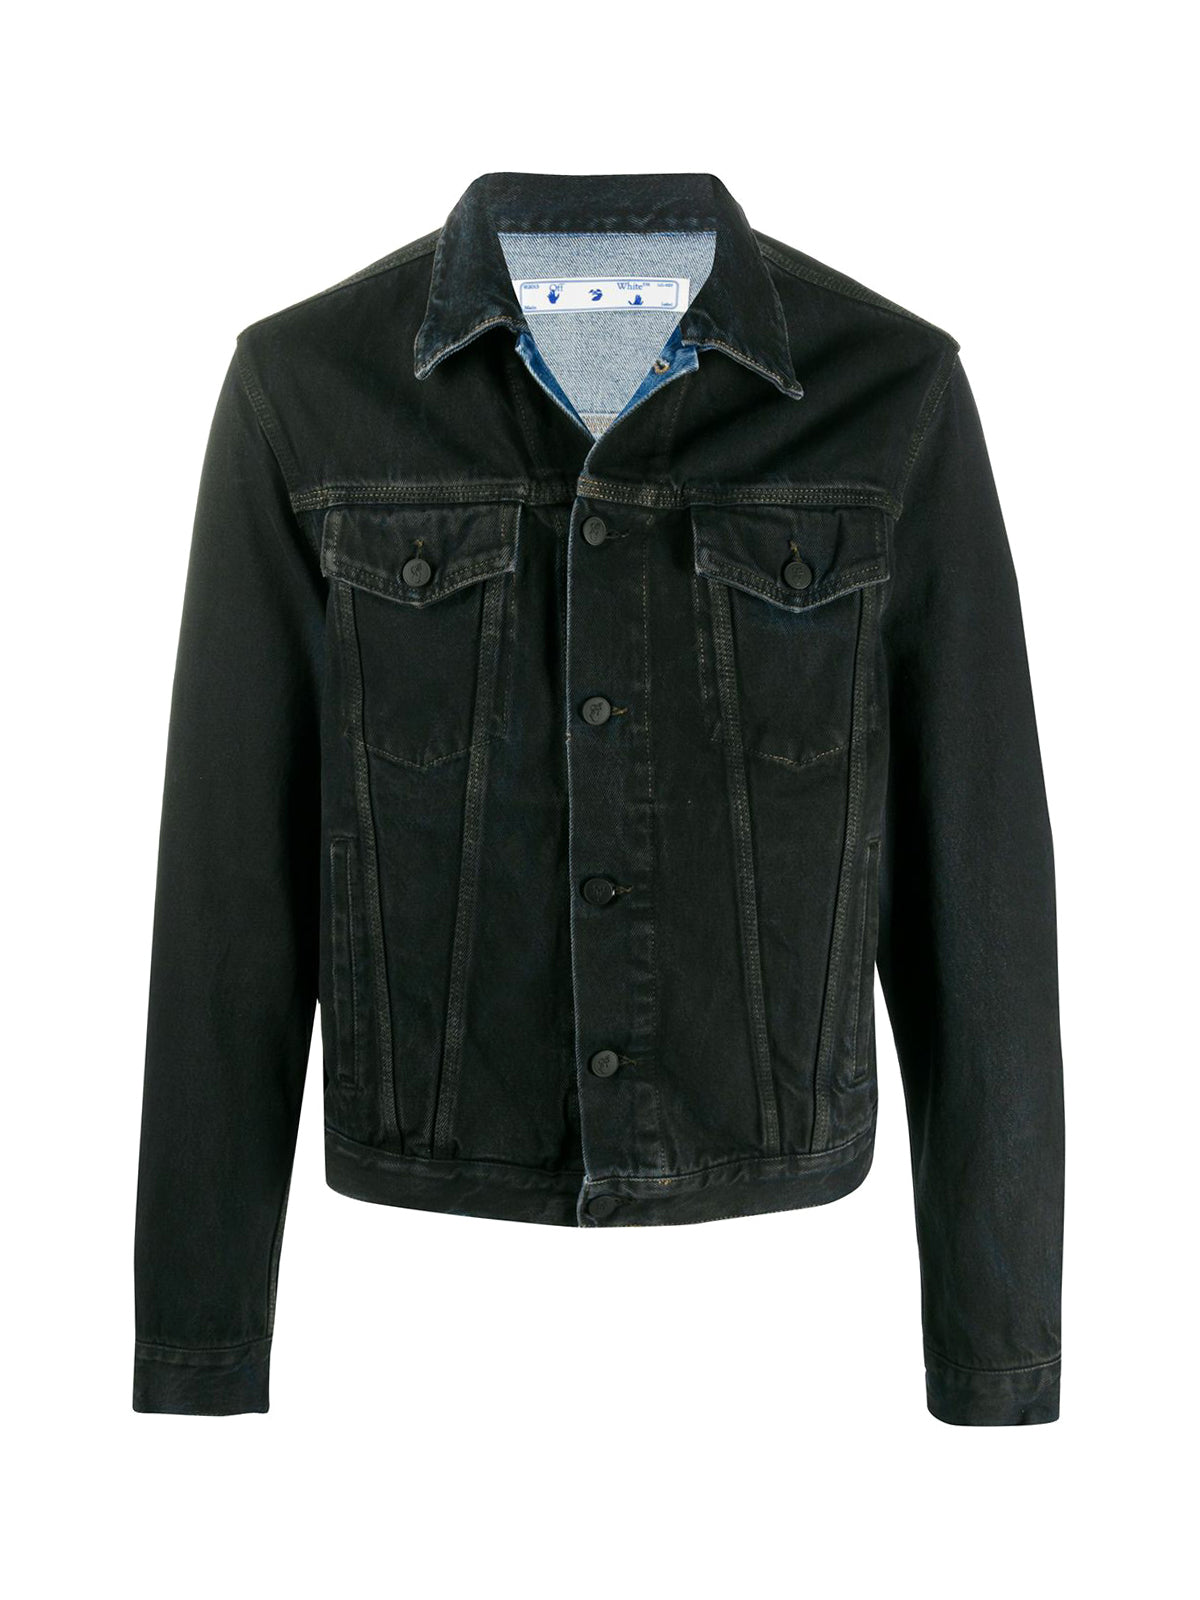 Arrows print denim jacket